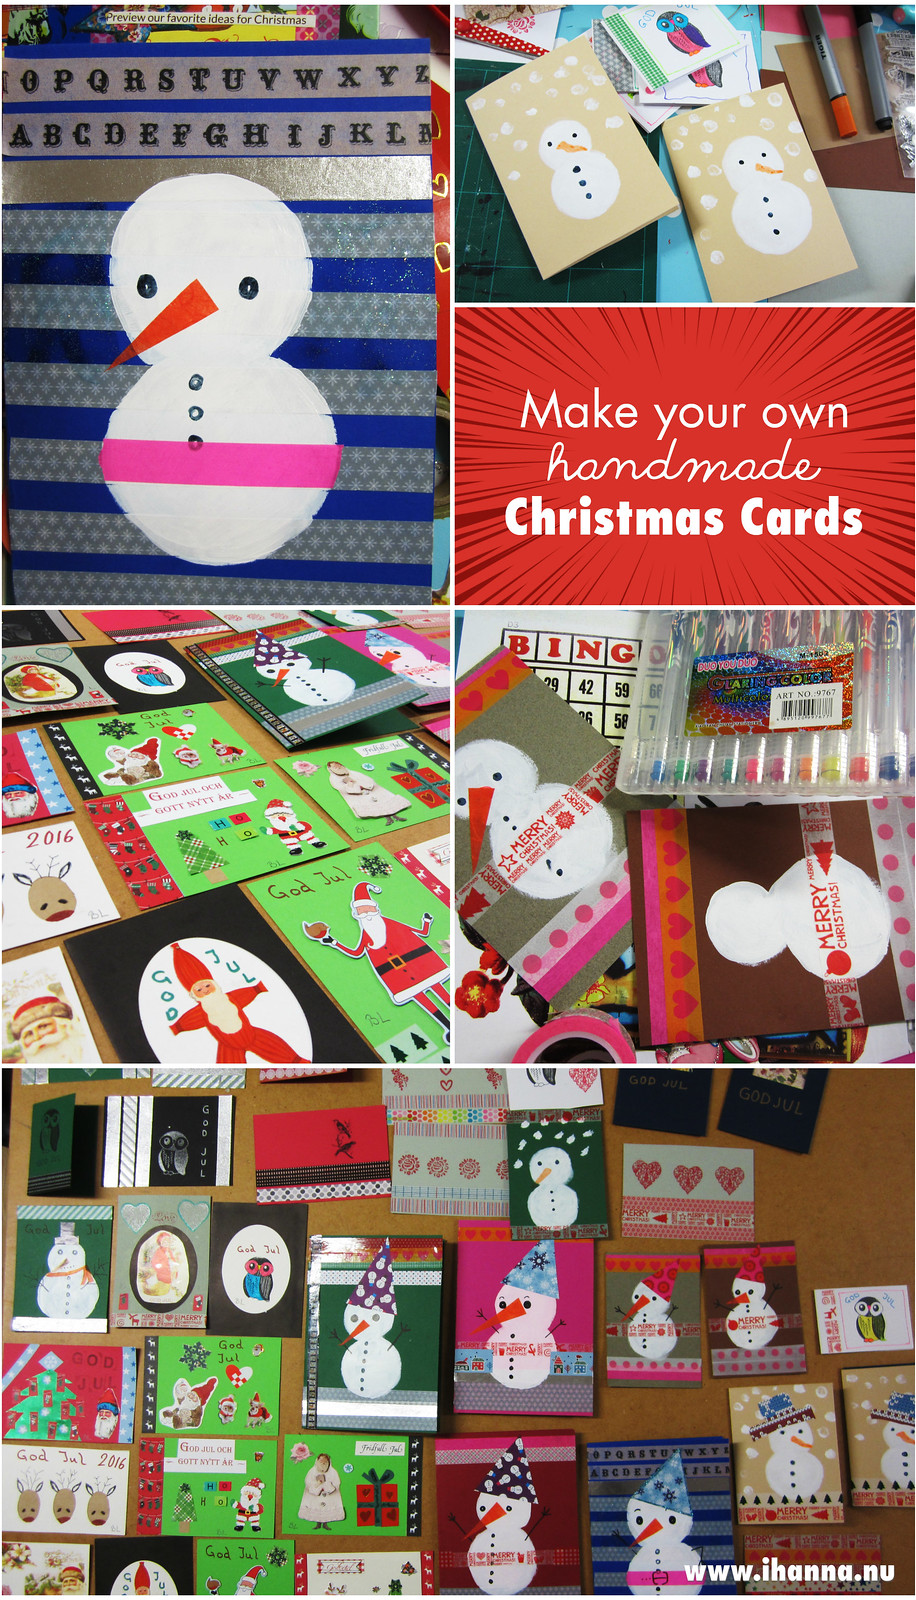 Make your own handmade Christmas Cards and send out some jolly good Christmas Crafting Spirit